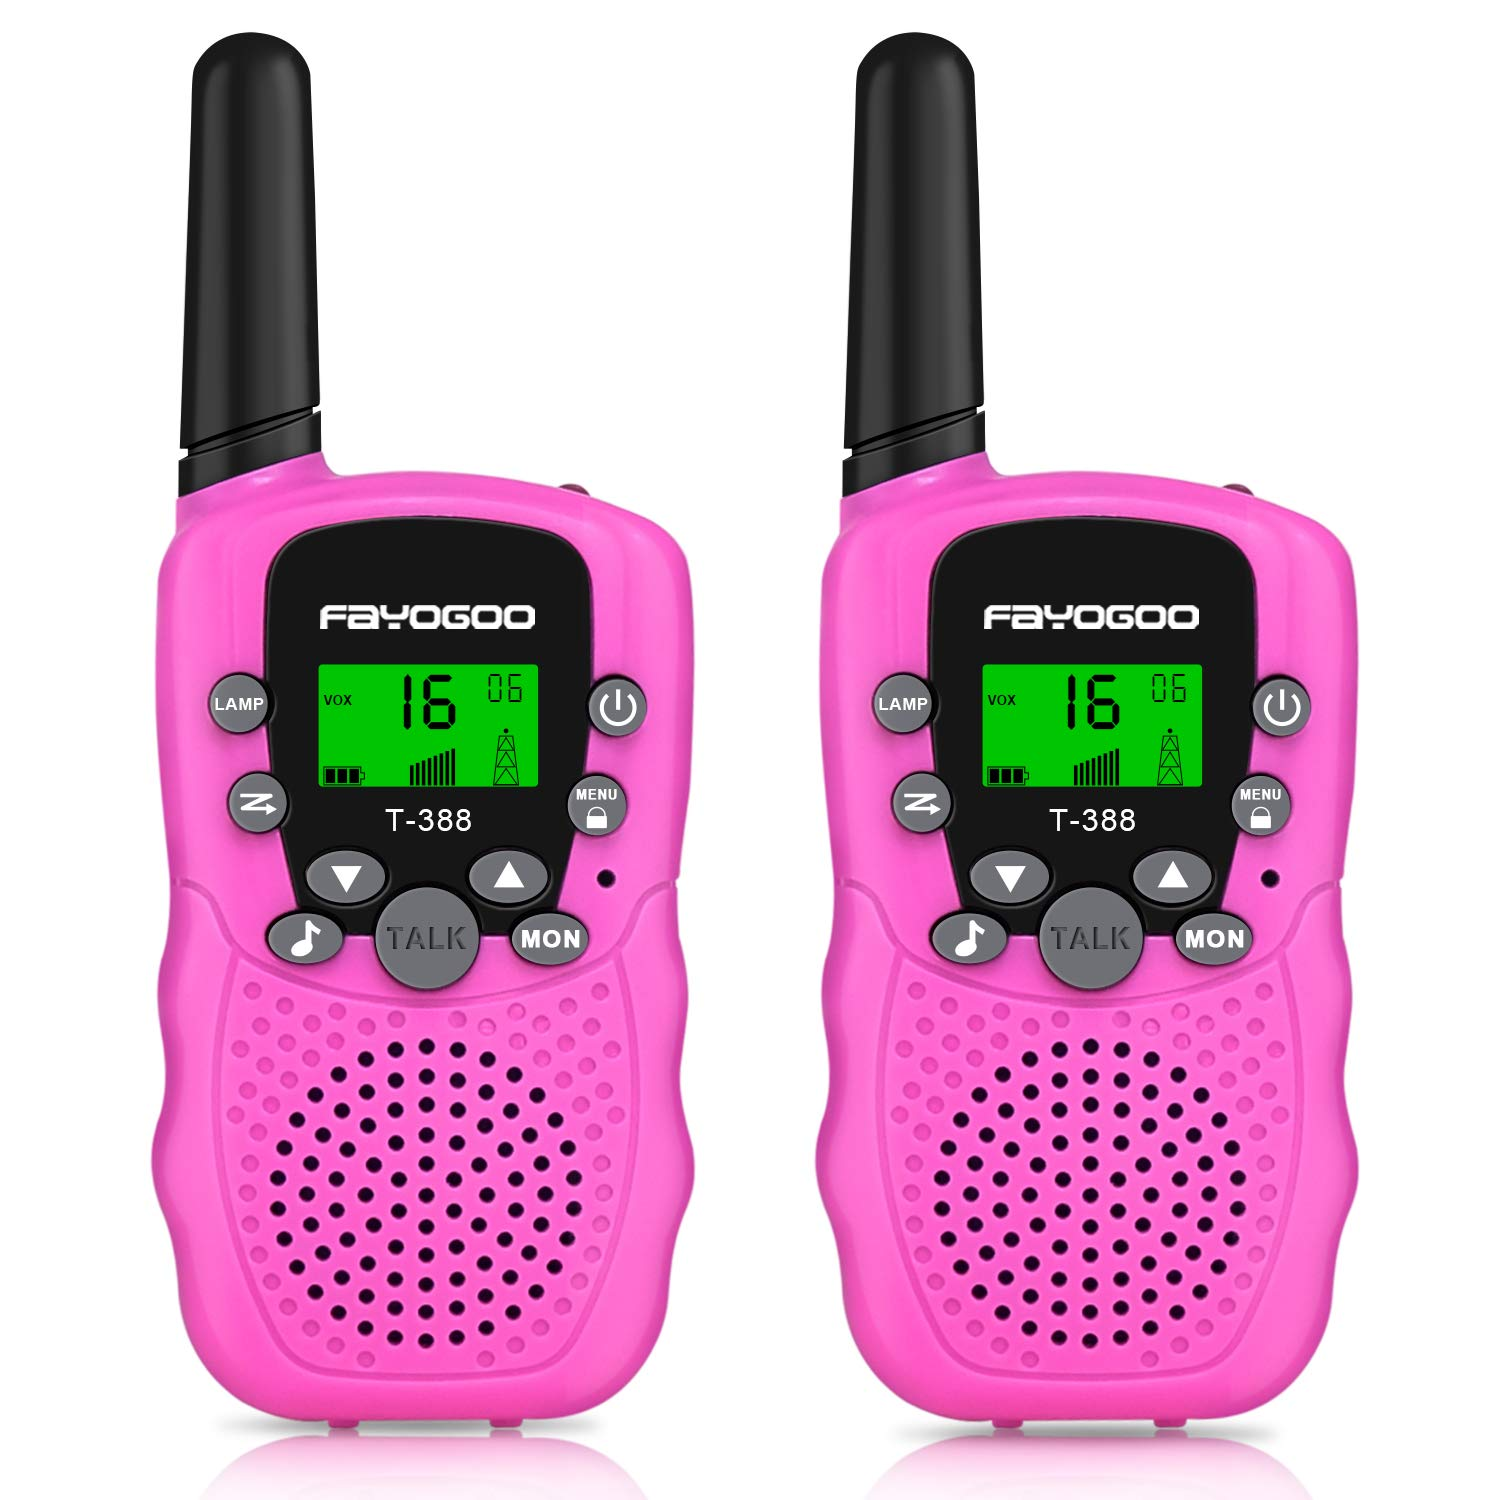 FAYOGOO Kids Walkie Talkies, 22-Channel FRS/GMRS Radio, 4-Mile Range Two Way Radios with Flashlight and LCD Screen, and Toys for 3-12 Year Old Boys and Girls (Cute Pink) by FAYOGOO